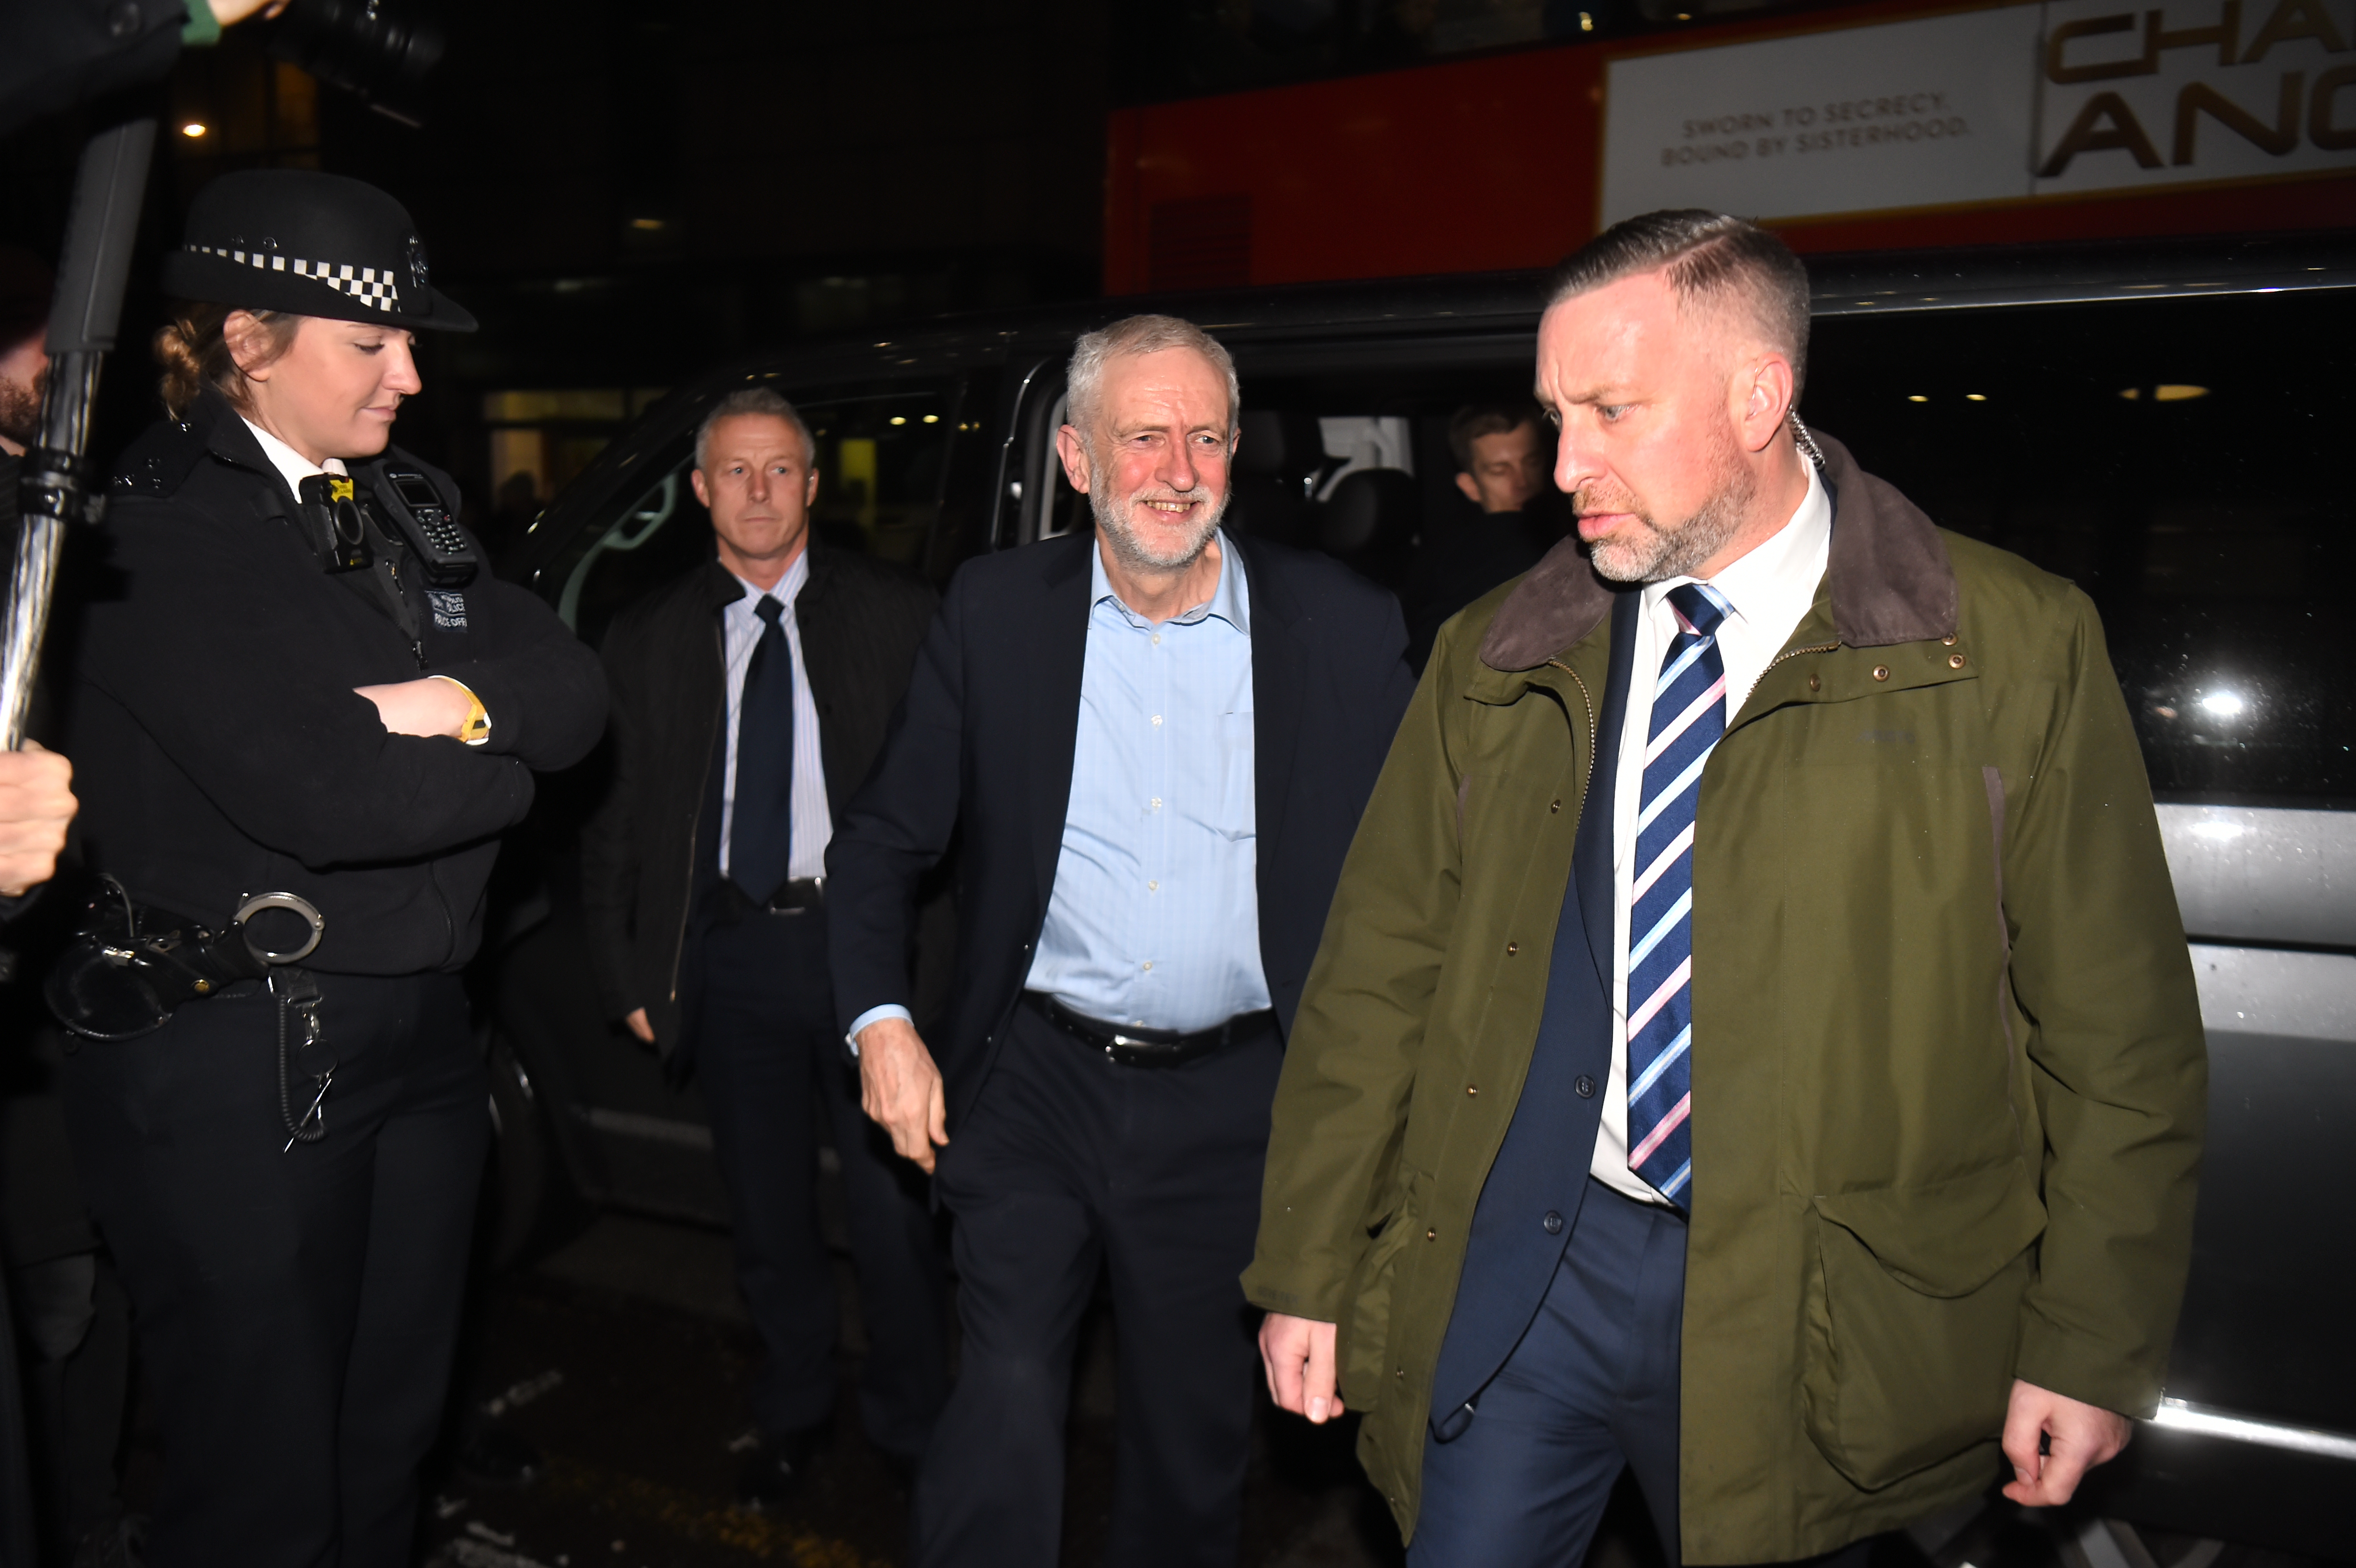 Labour leader Jeremy Corbyn (centre) arrives for Channel 4 News' General Election climate debate at ITN Studios in Holborn, central London.